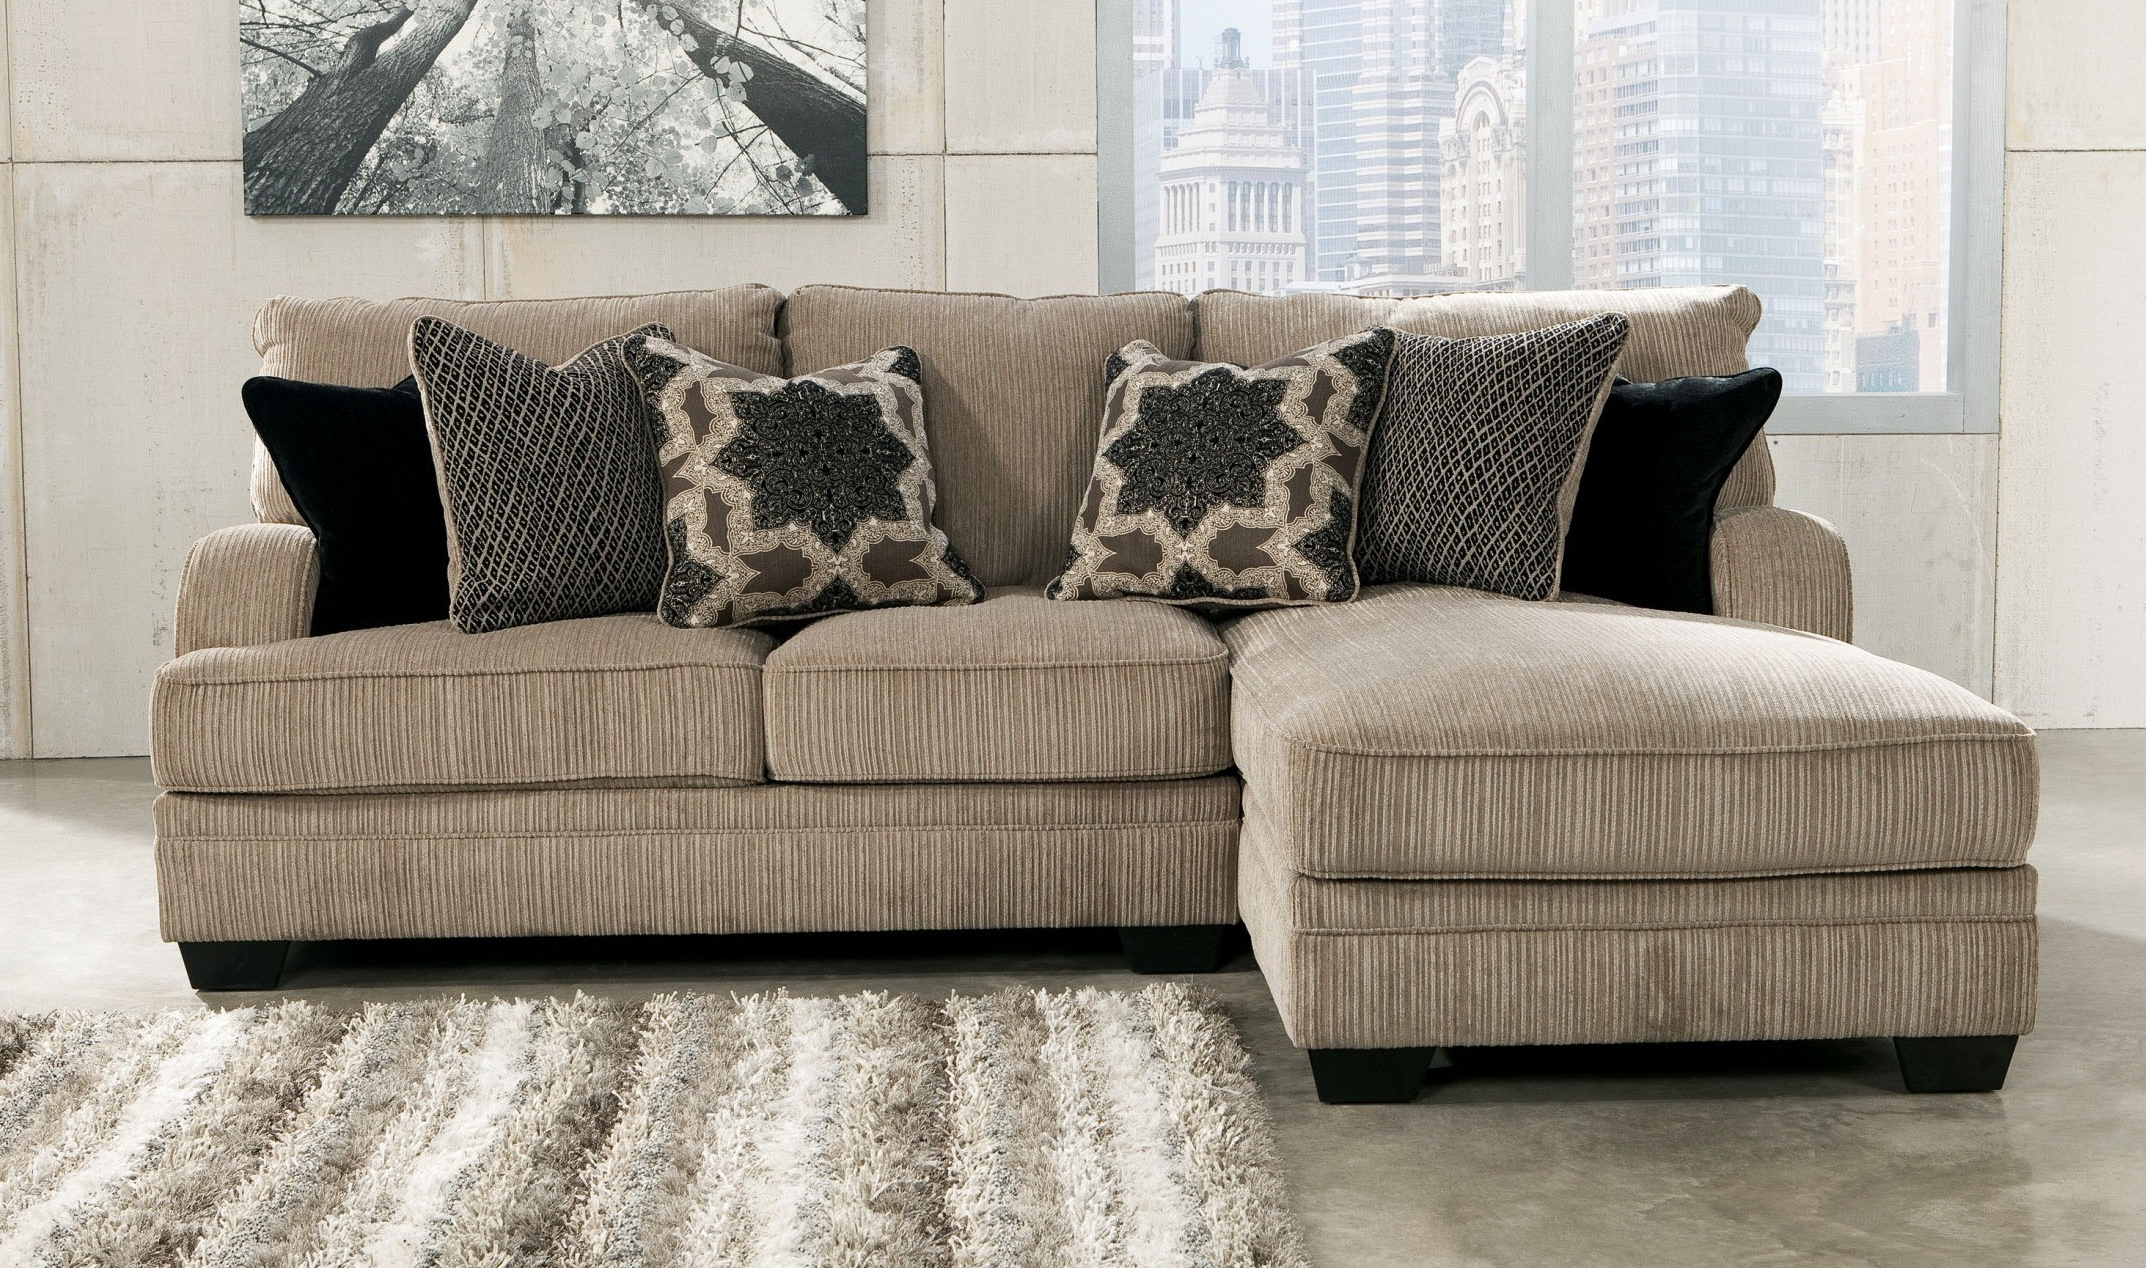 Comfortable Small Sectionals Black Reclining Sectionals Small With Most Current Mini Sectional Sofas (View 12 of 20)